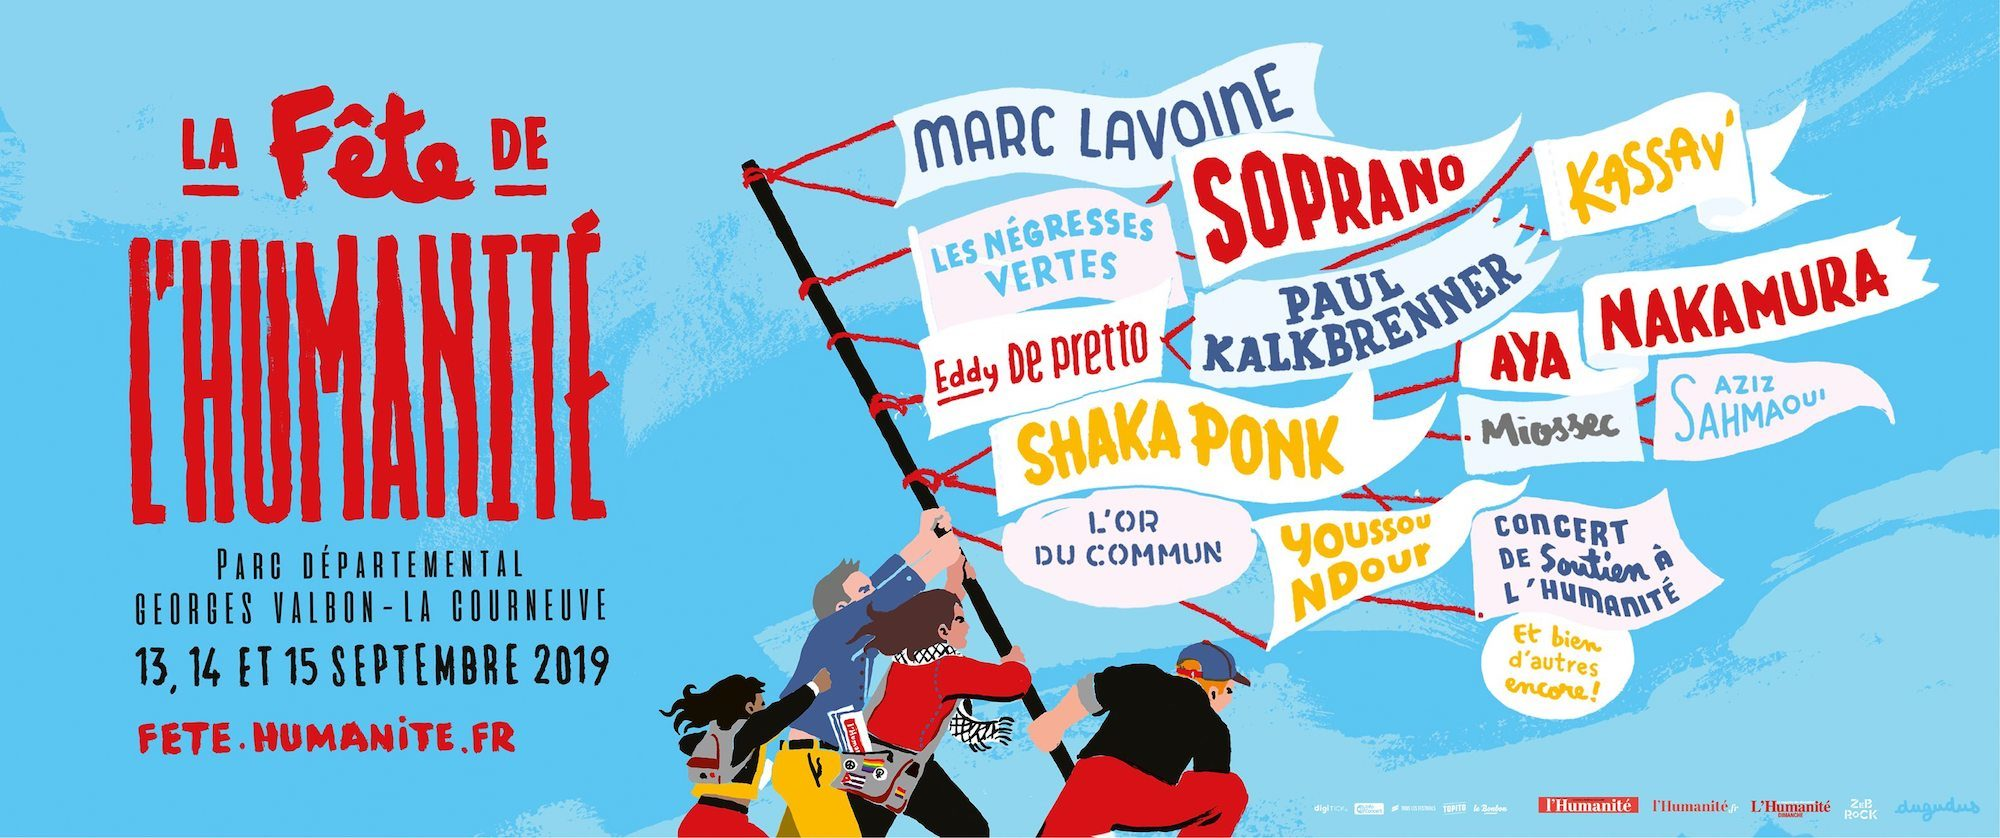 An illustrated poster for Fete de l'Humanité, showing people flying flags with the names of the musicians lined up to perform a the festival.